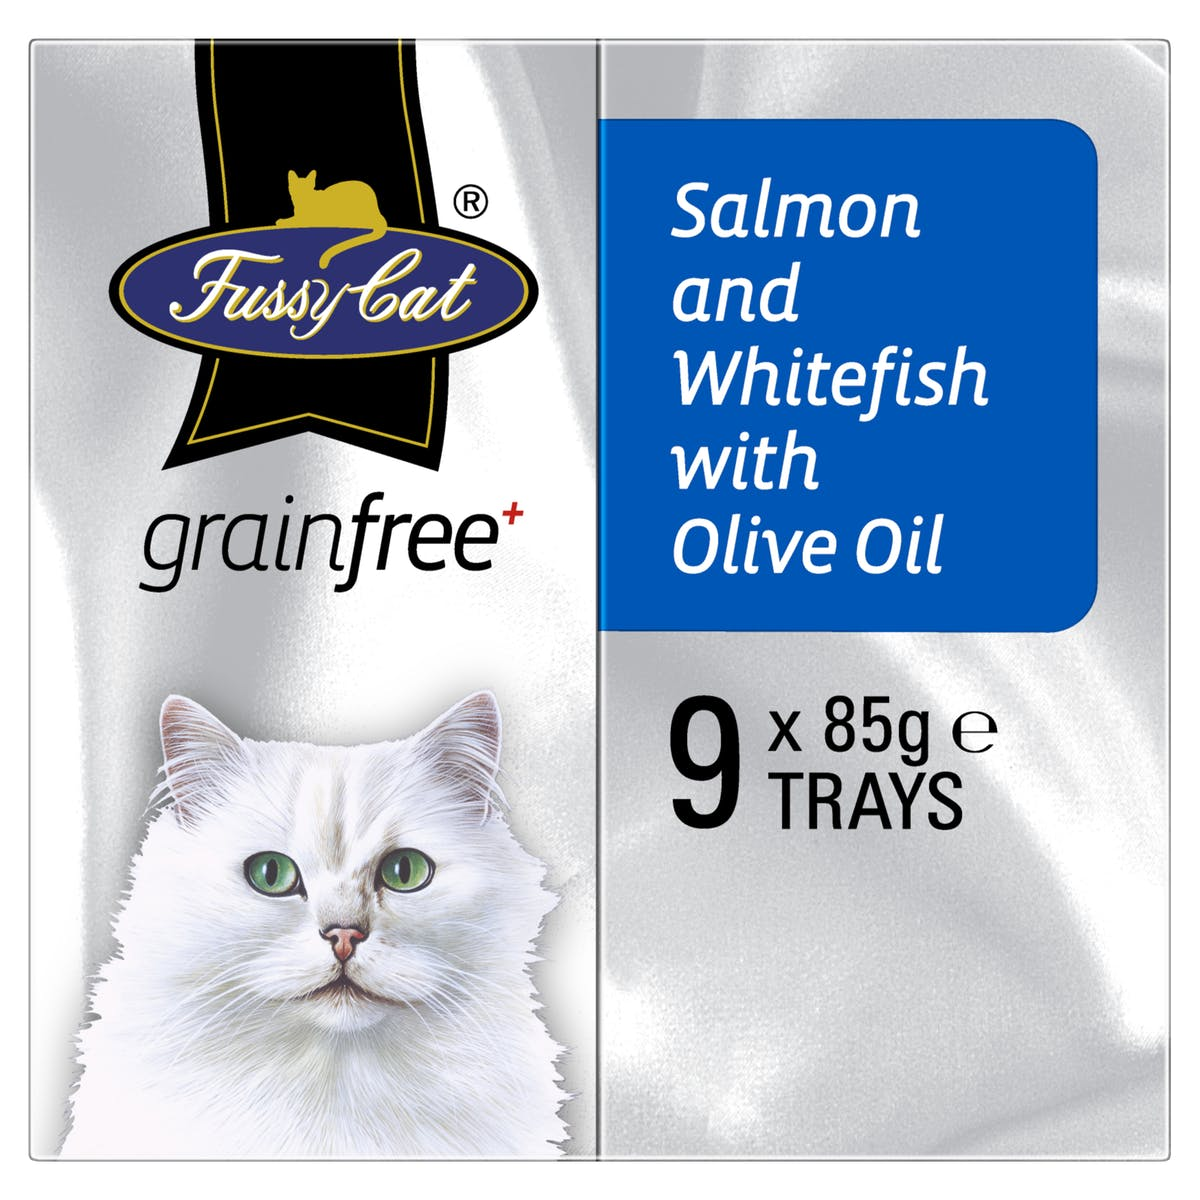 Fussy Cat | Salmon and Whitefish with Olive Oil 9 x 85g | Wet Cat Food | Left of pack